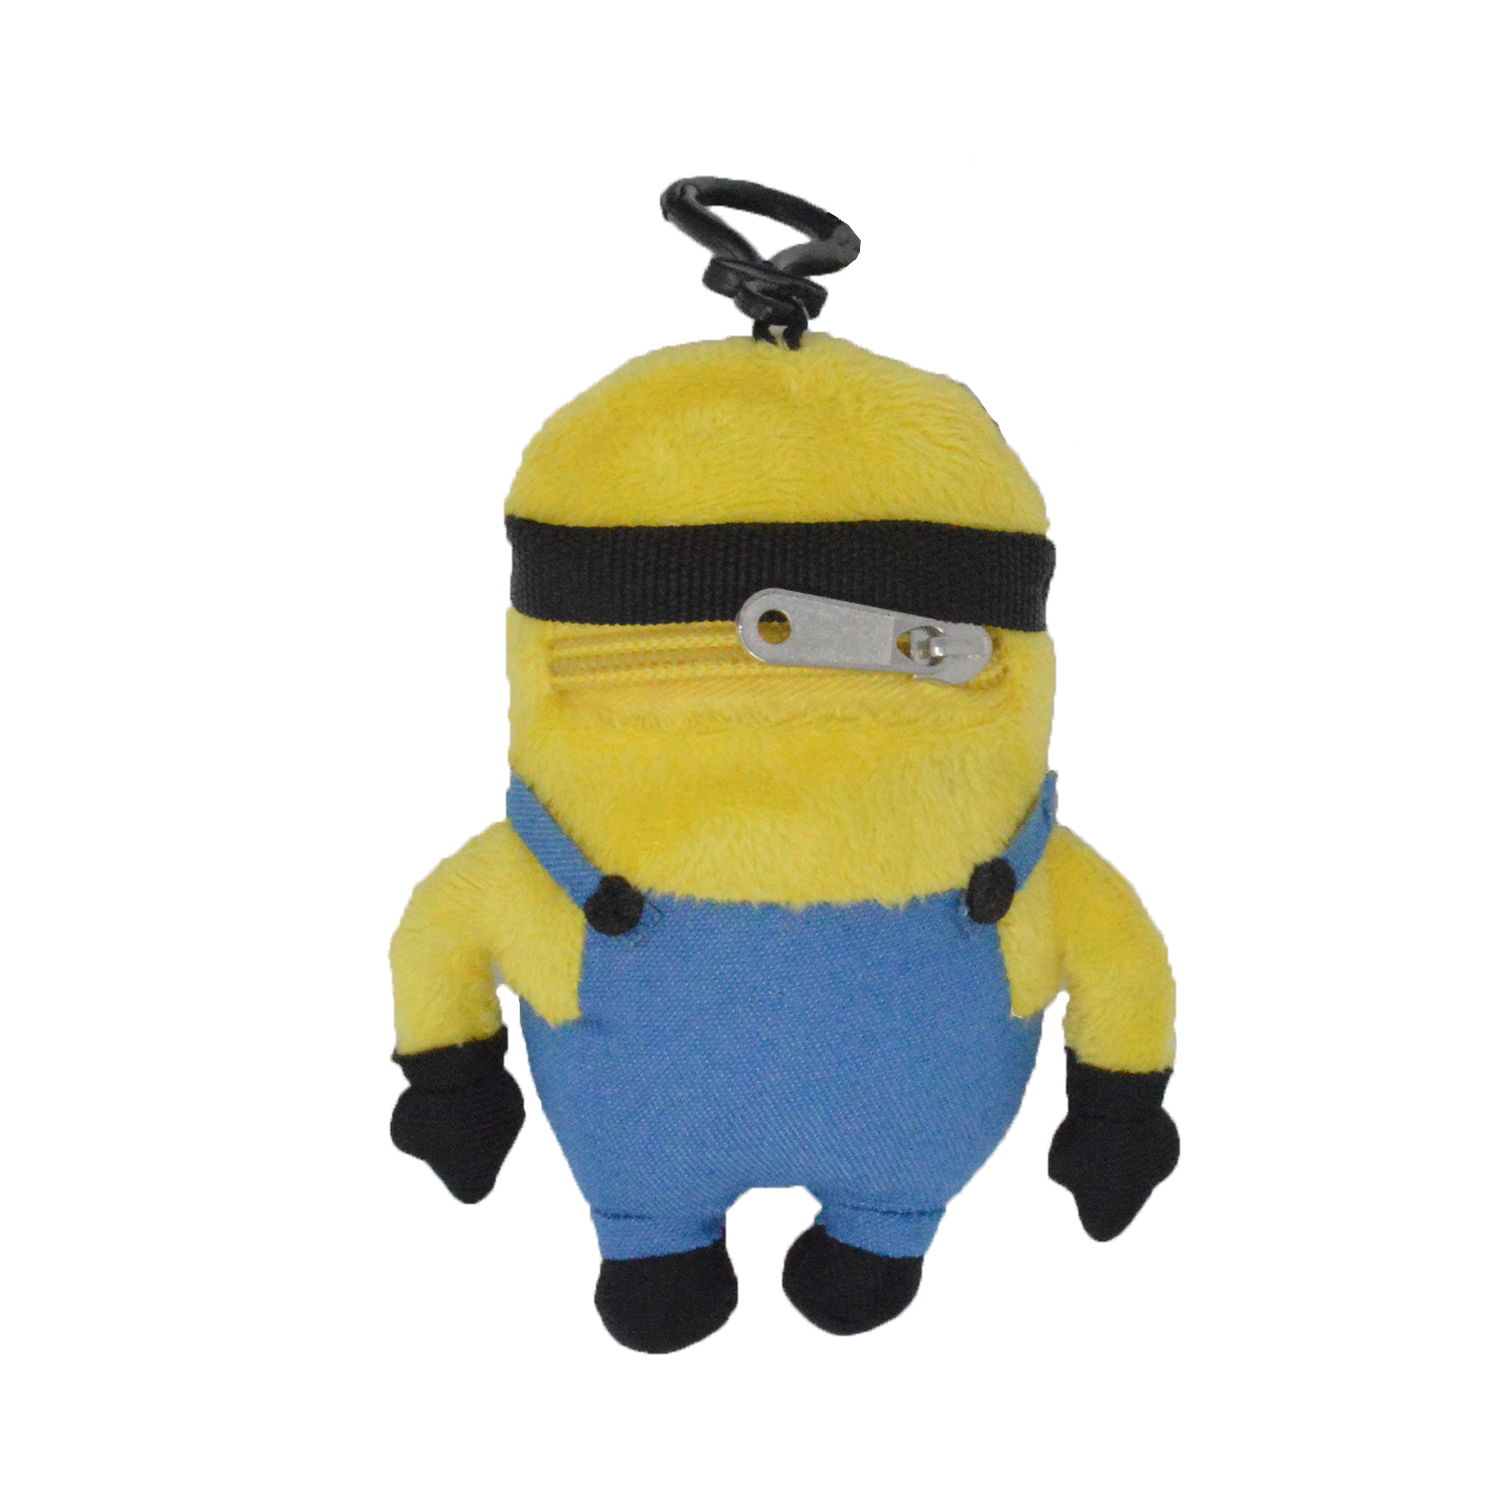 Cartoon-Plush-Coin-Clip-Toy-Bag-with-Zipper-for-Backpacks-Multiple-Styles thumbnail 15